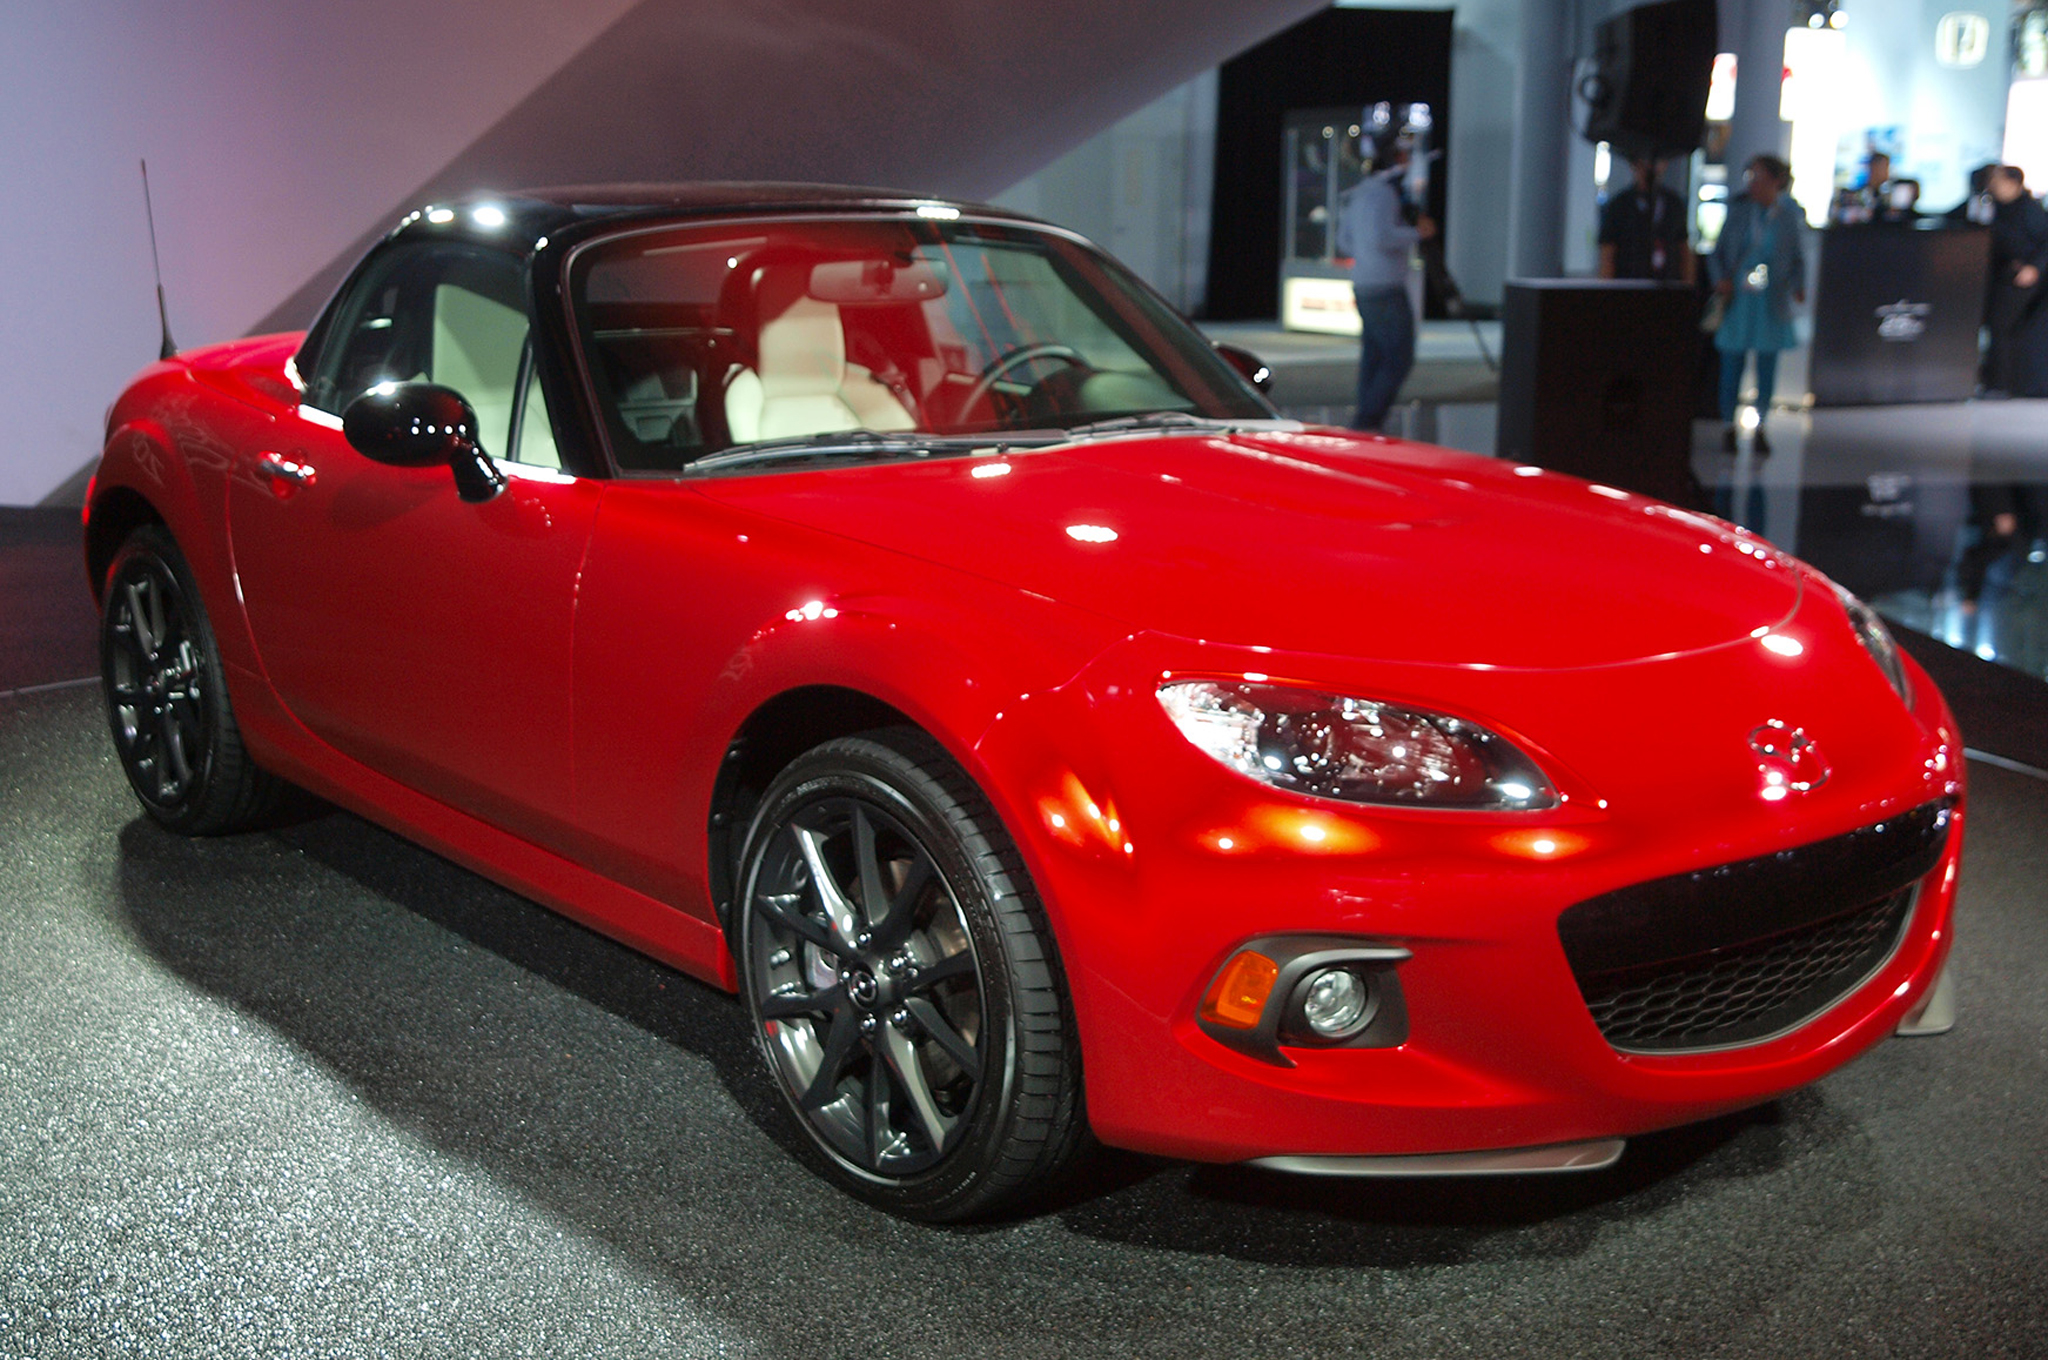 Mazda Miata 25th Anniversary Sells Out in 10 Minutes